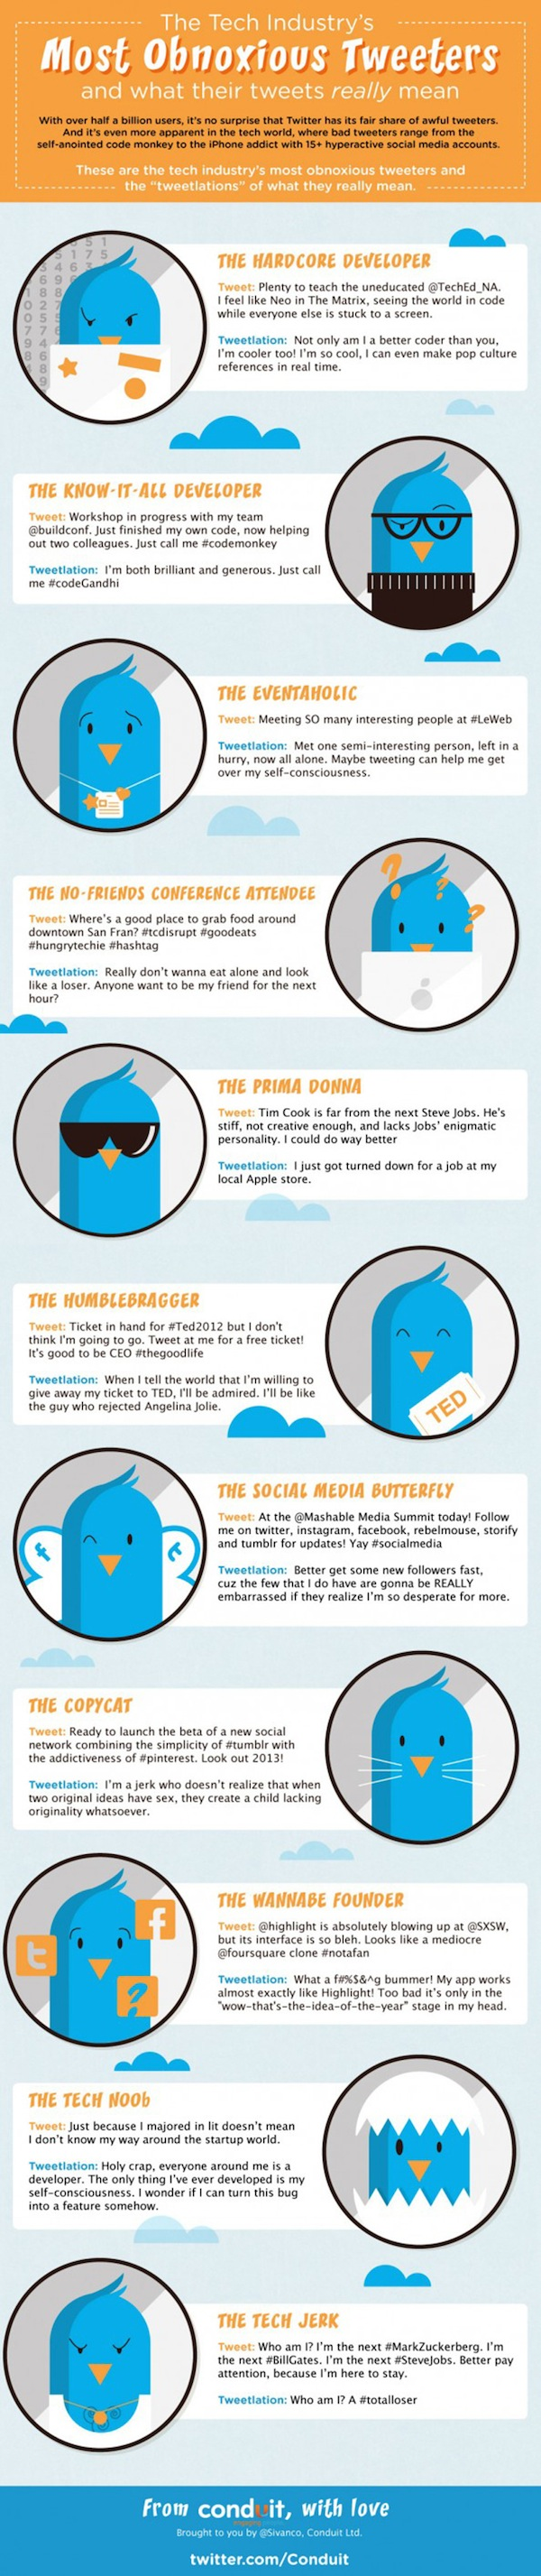 Twitter's Most Obnoxious Tech Tweeters Revealed [Infographic]